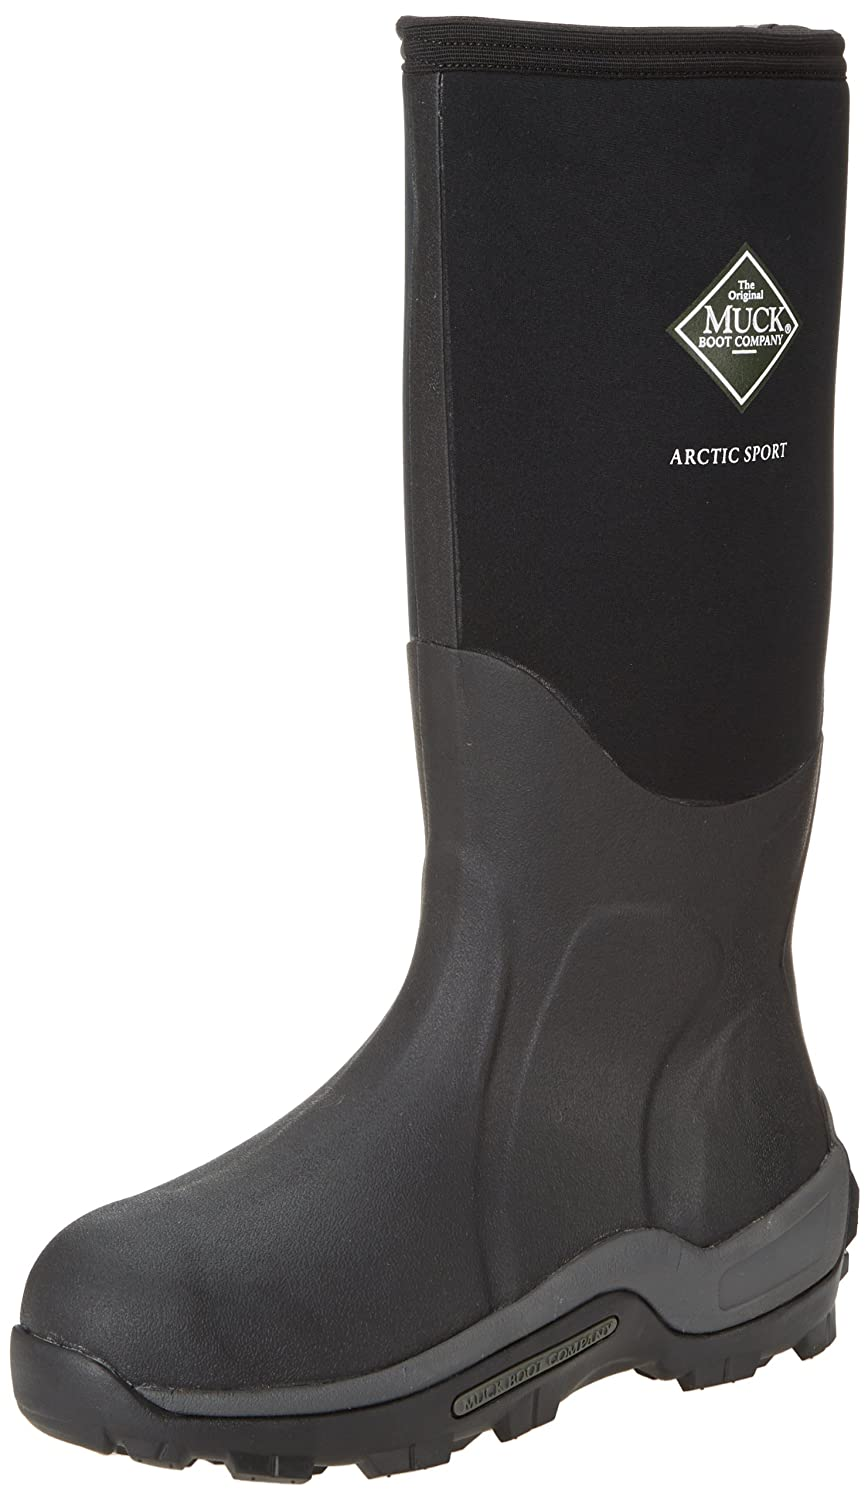 The Original MuckBoots Adult Arctic Sport Boot B00LNLF5V4 Unisex (M12/12.5 W13/13.5)|Black